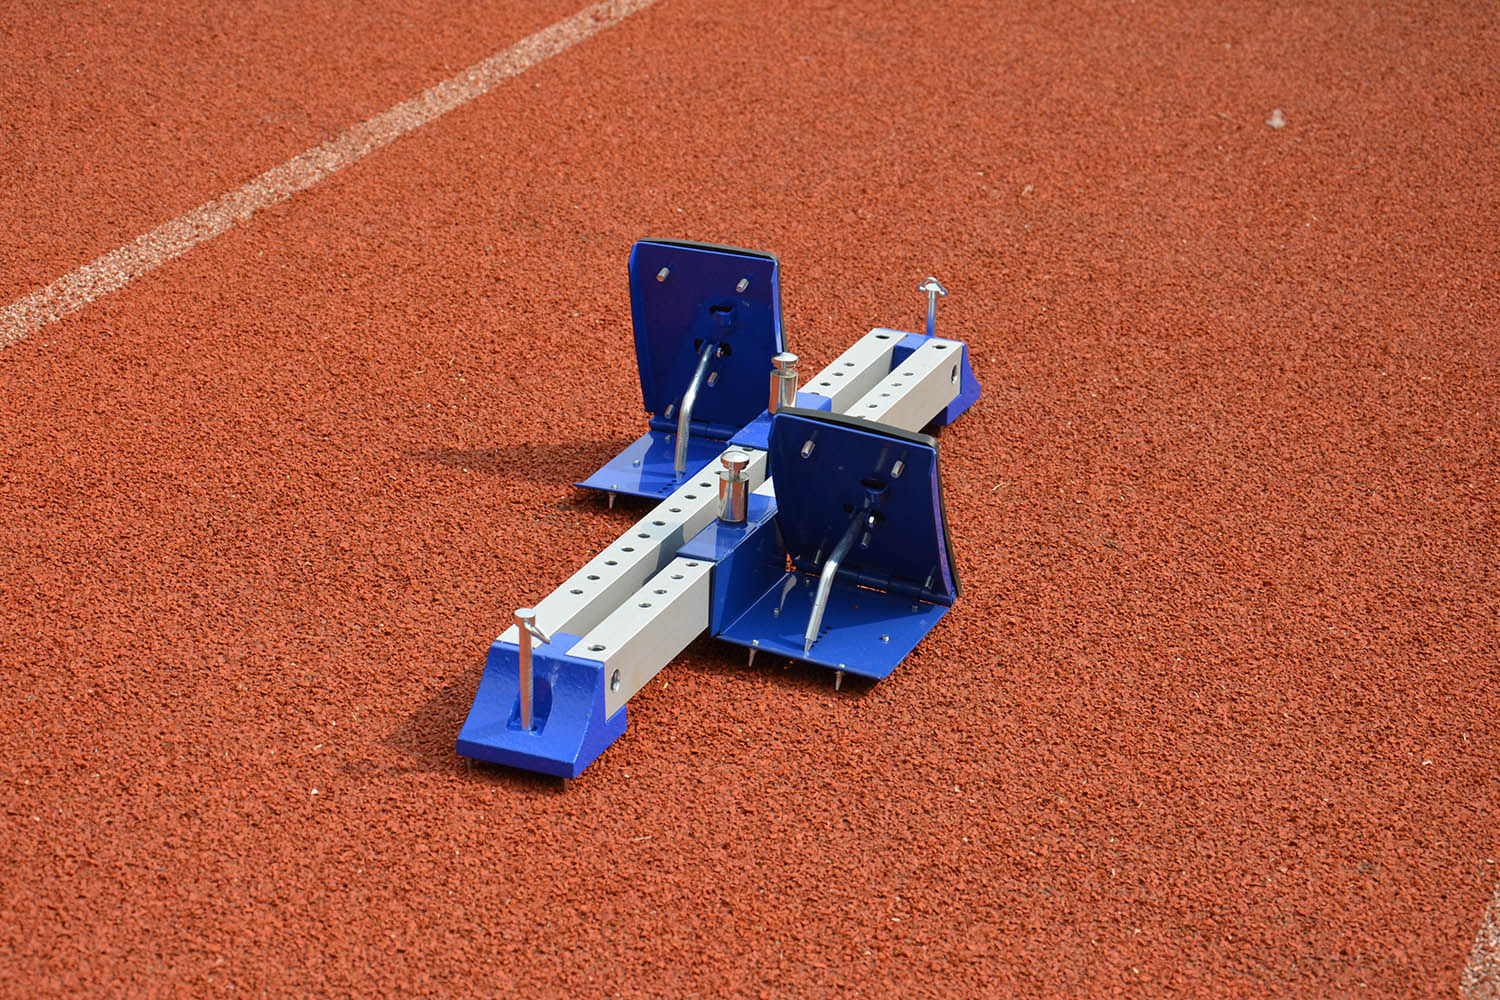 sport starting block starting best choice for competition-1